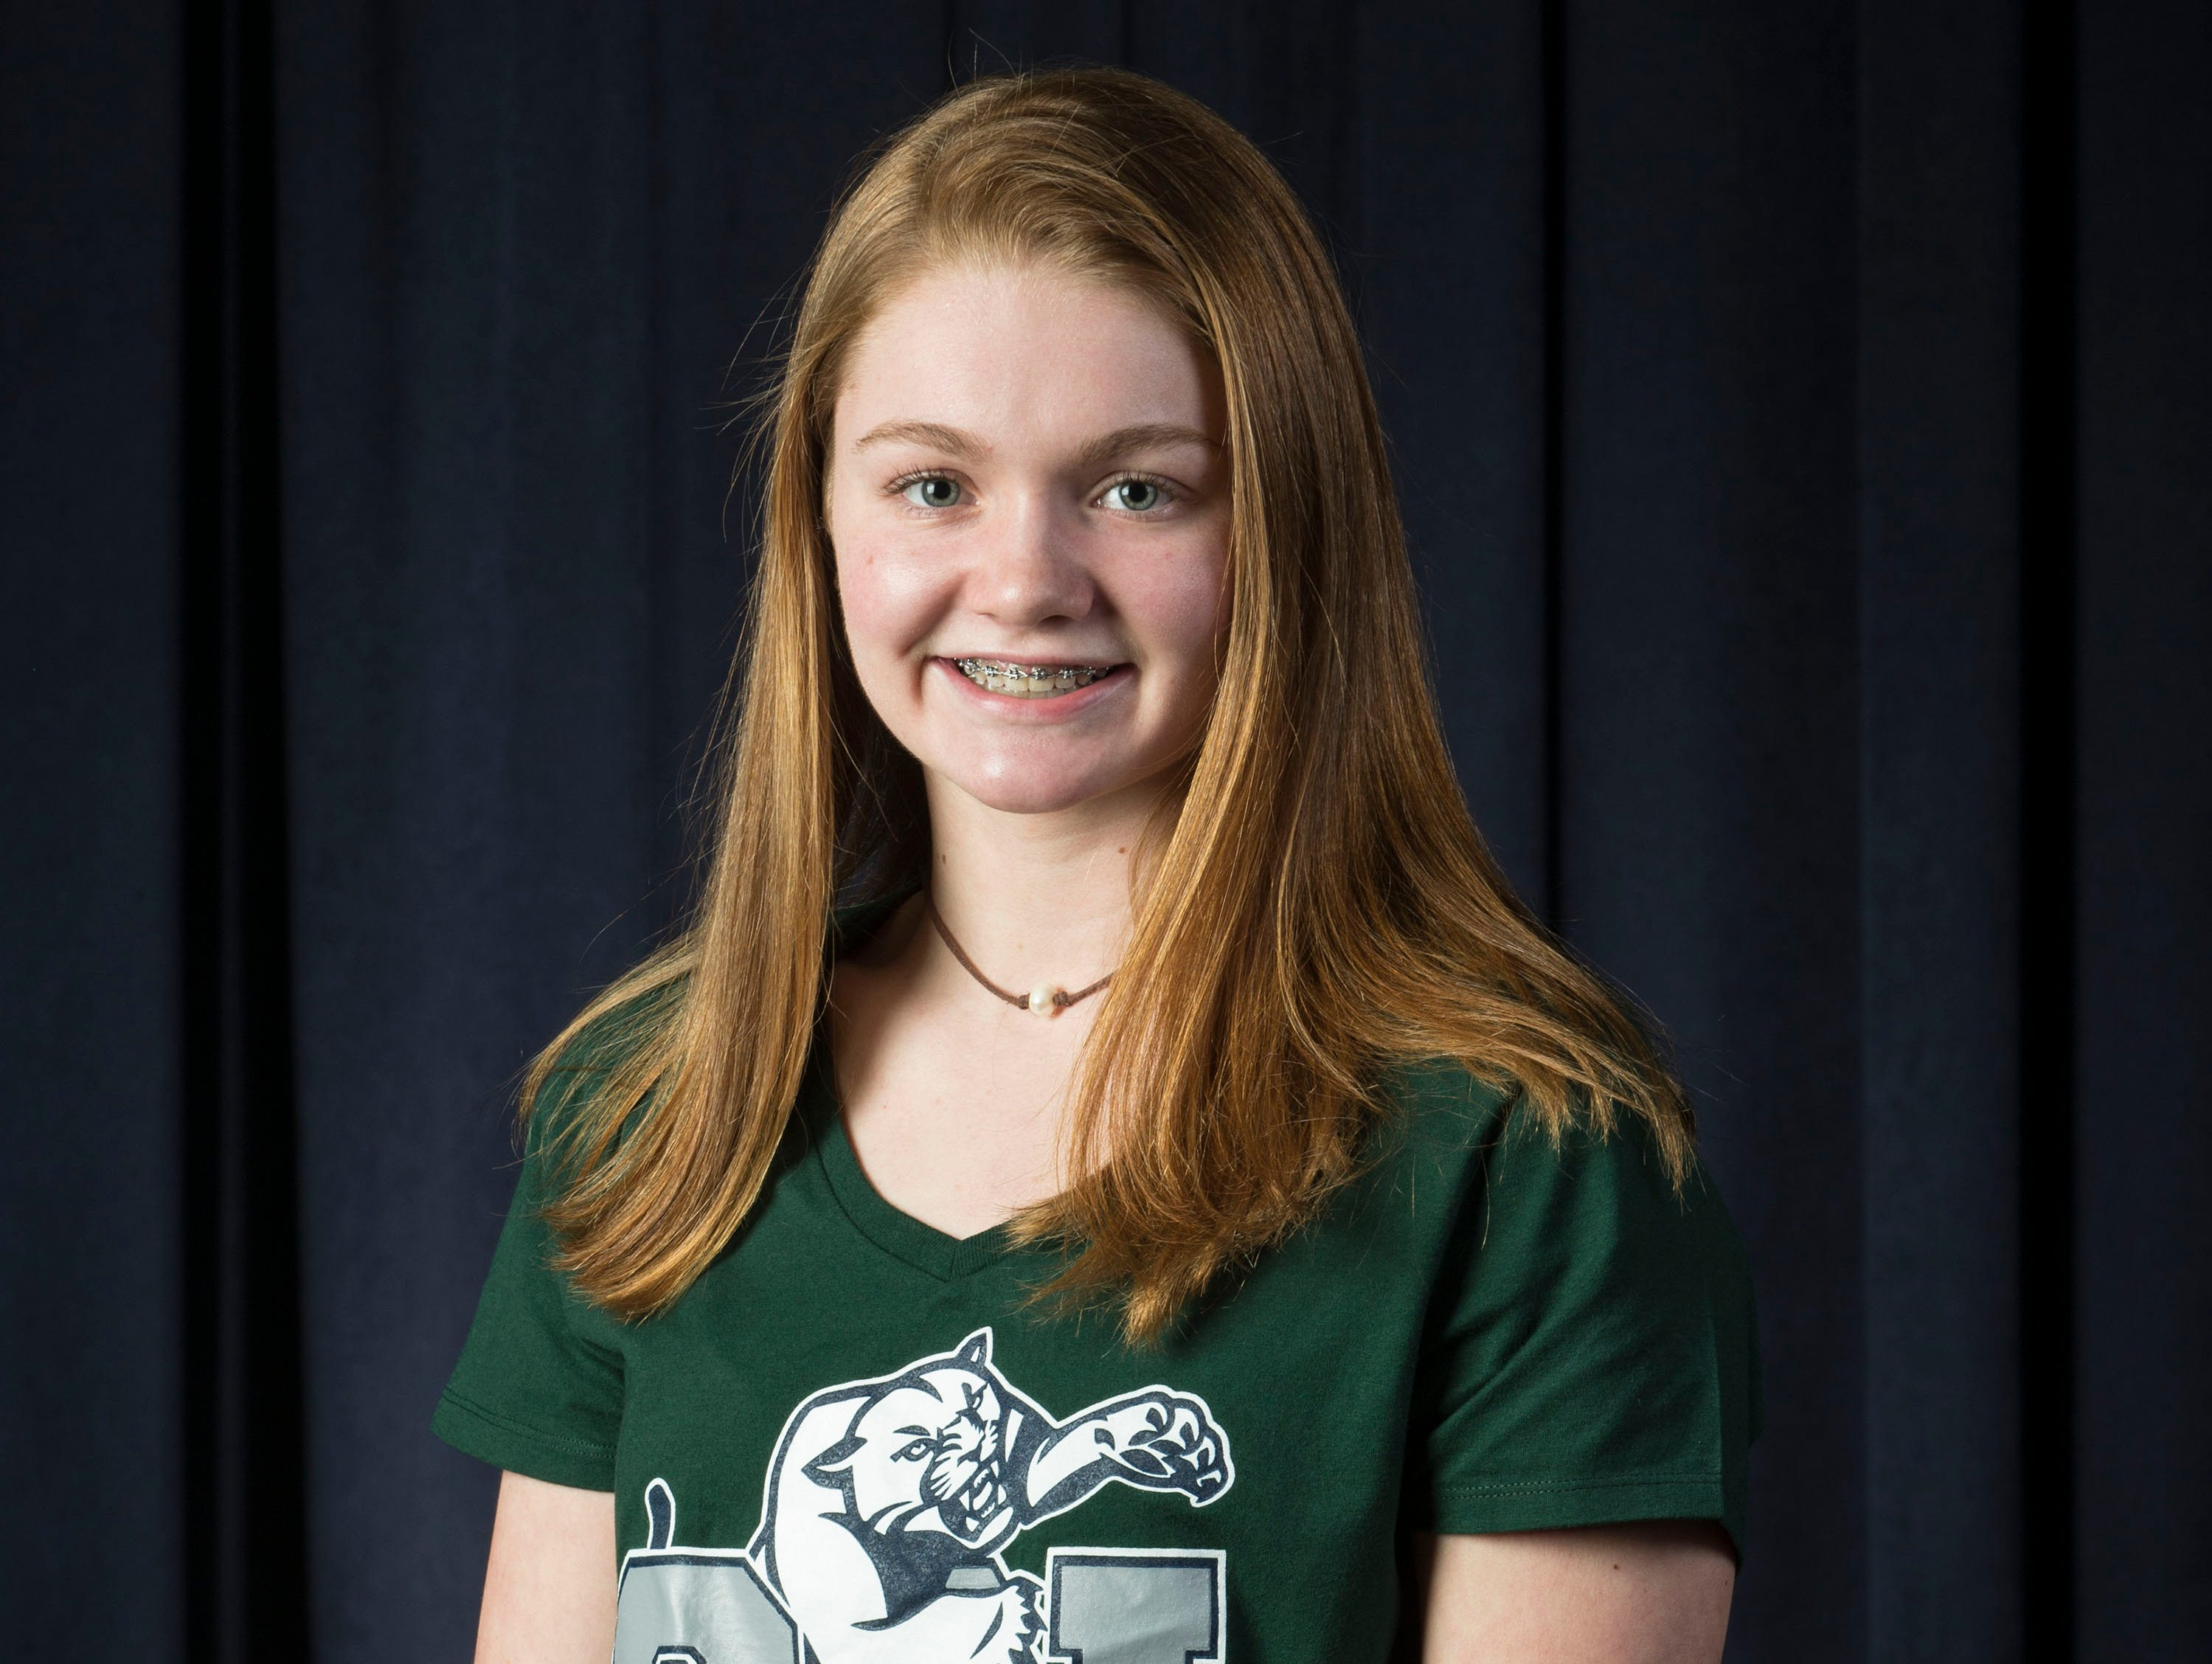 The 2019 All-Shore Girls Swim Team- Emma Shaughnessy of Colts Neck